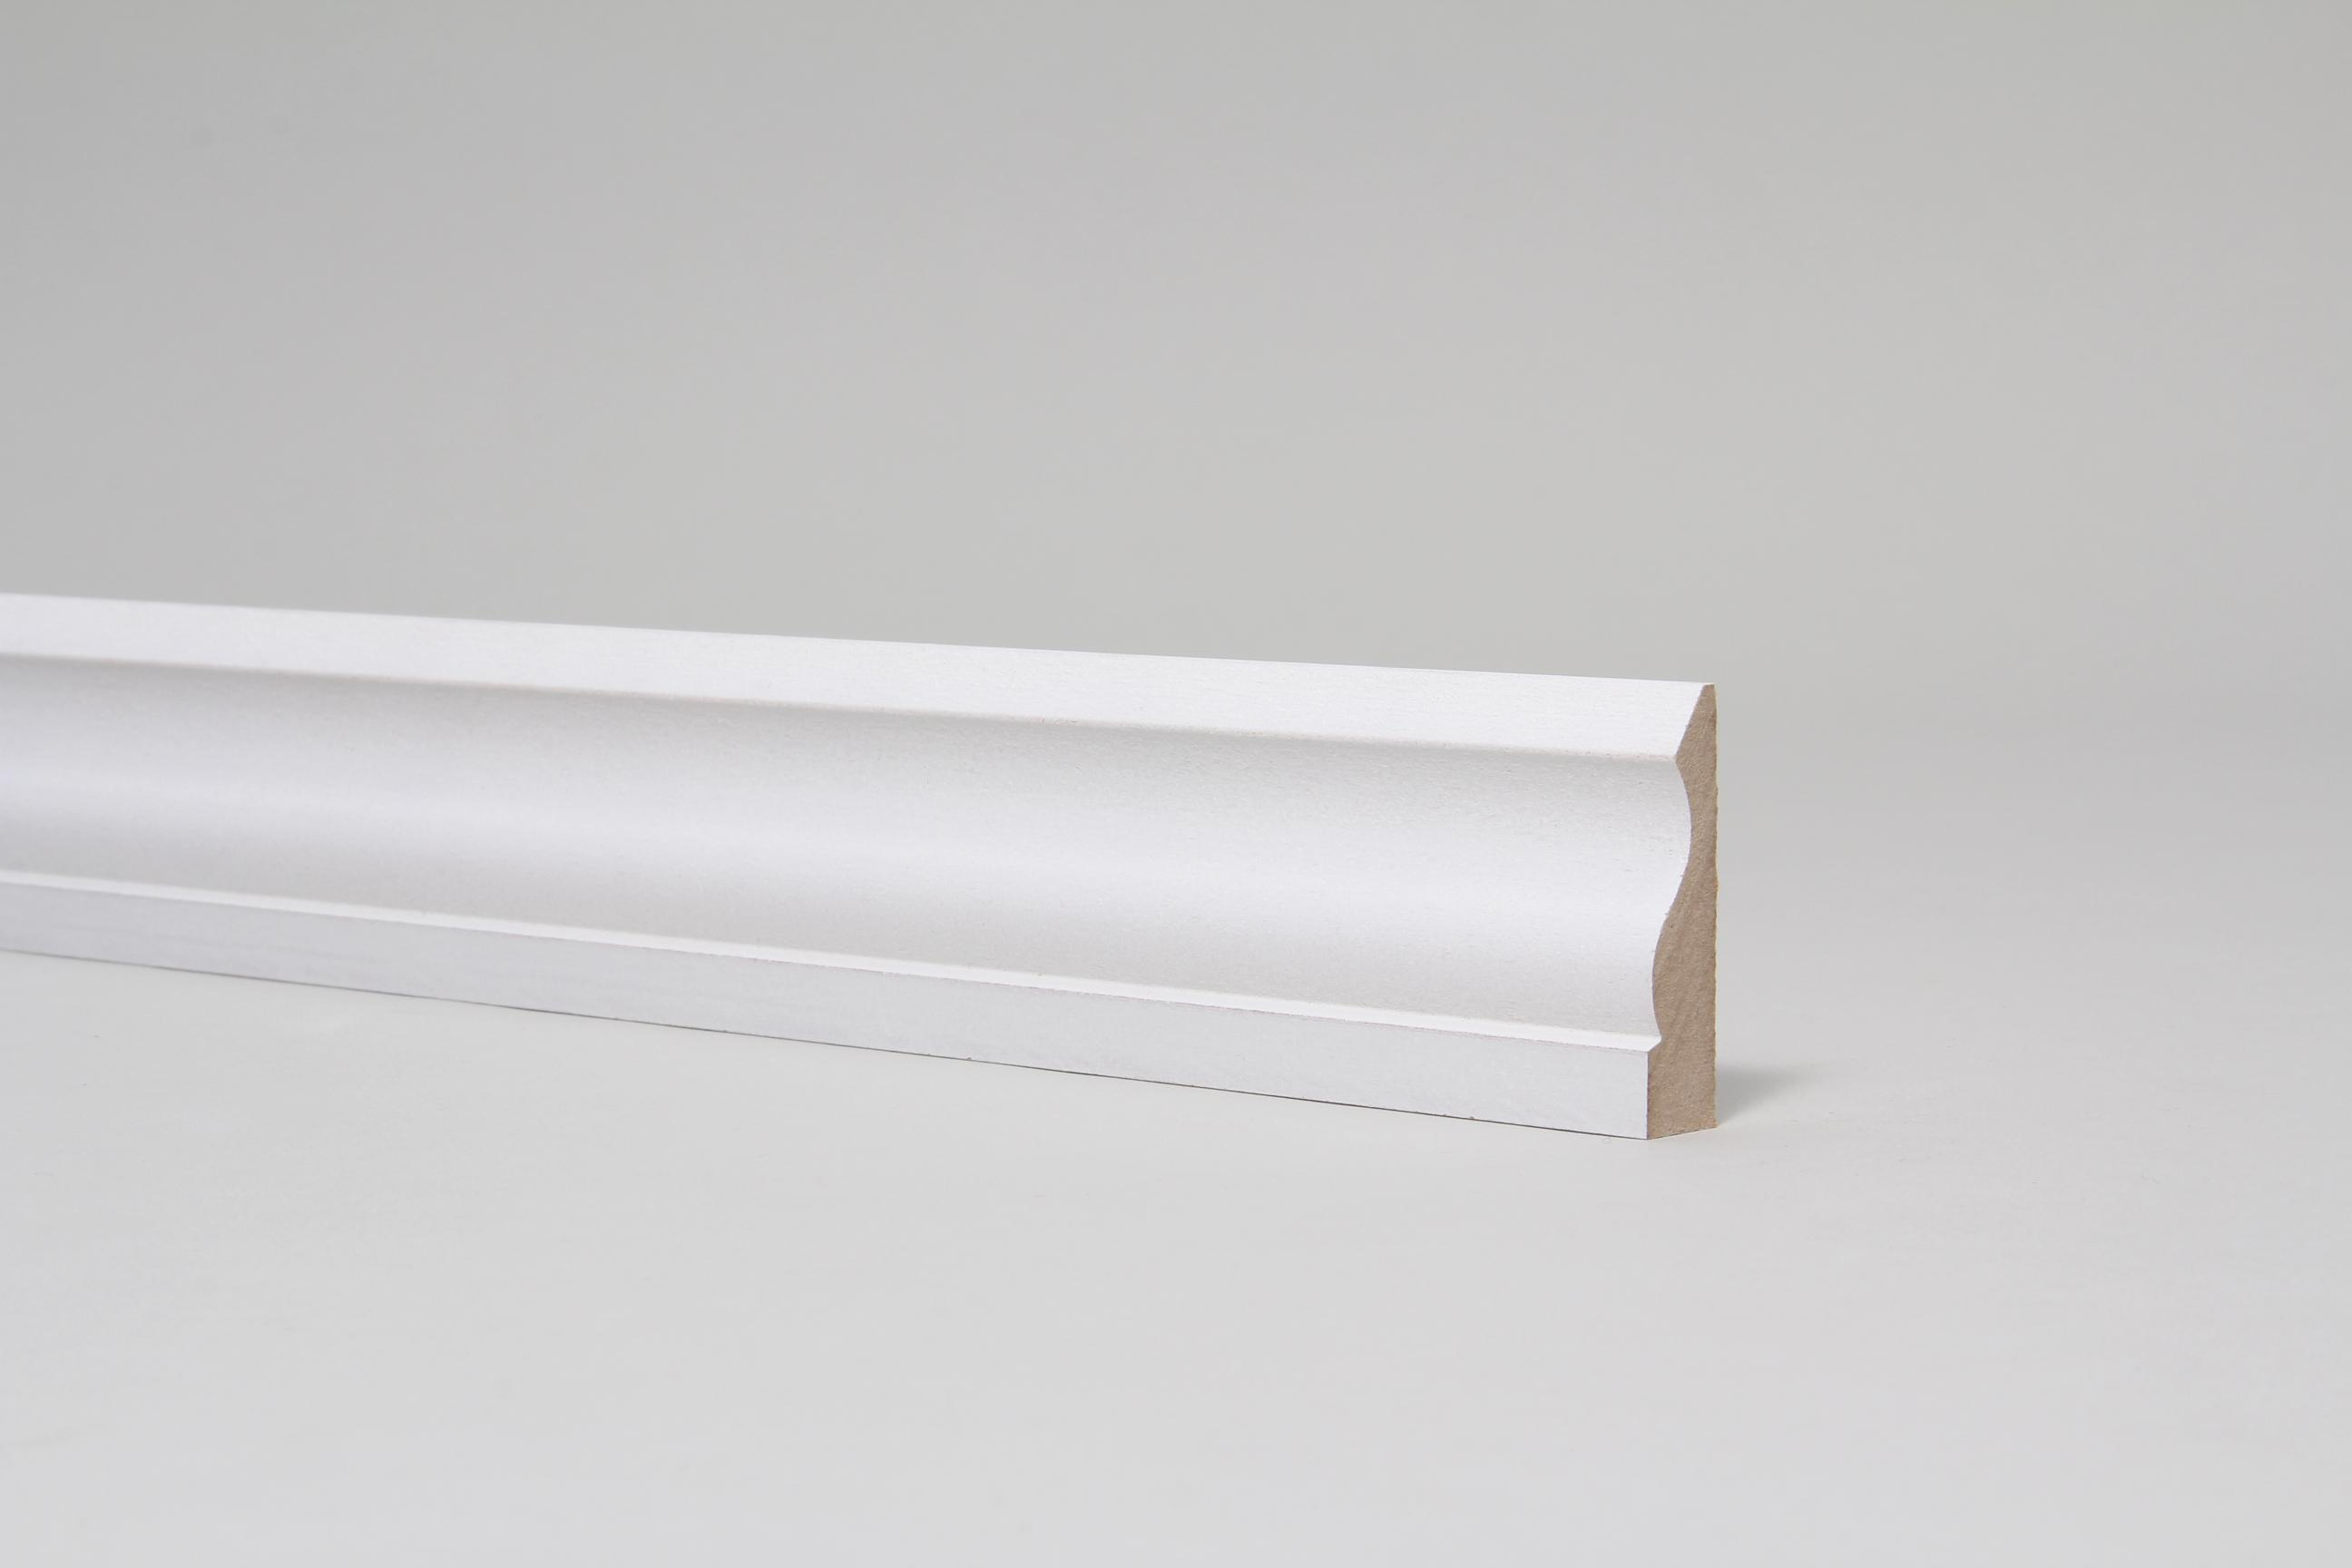 Ogee 15mm x 57mm Architrave Set Primed